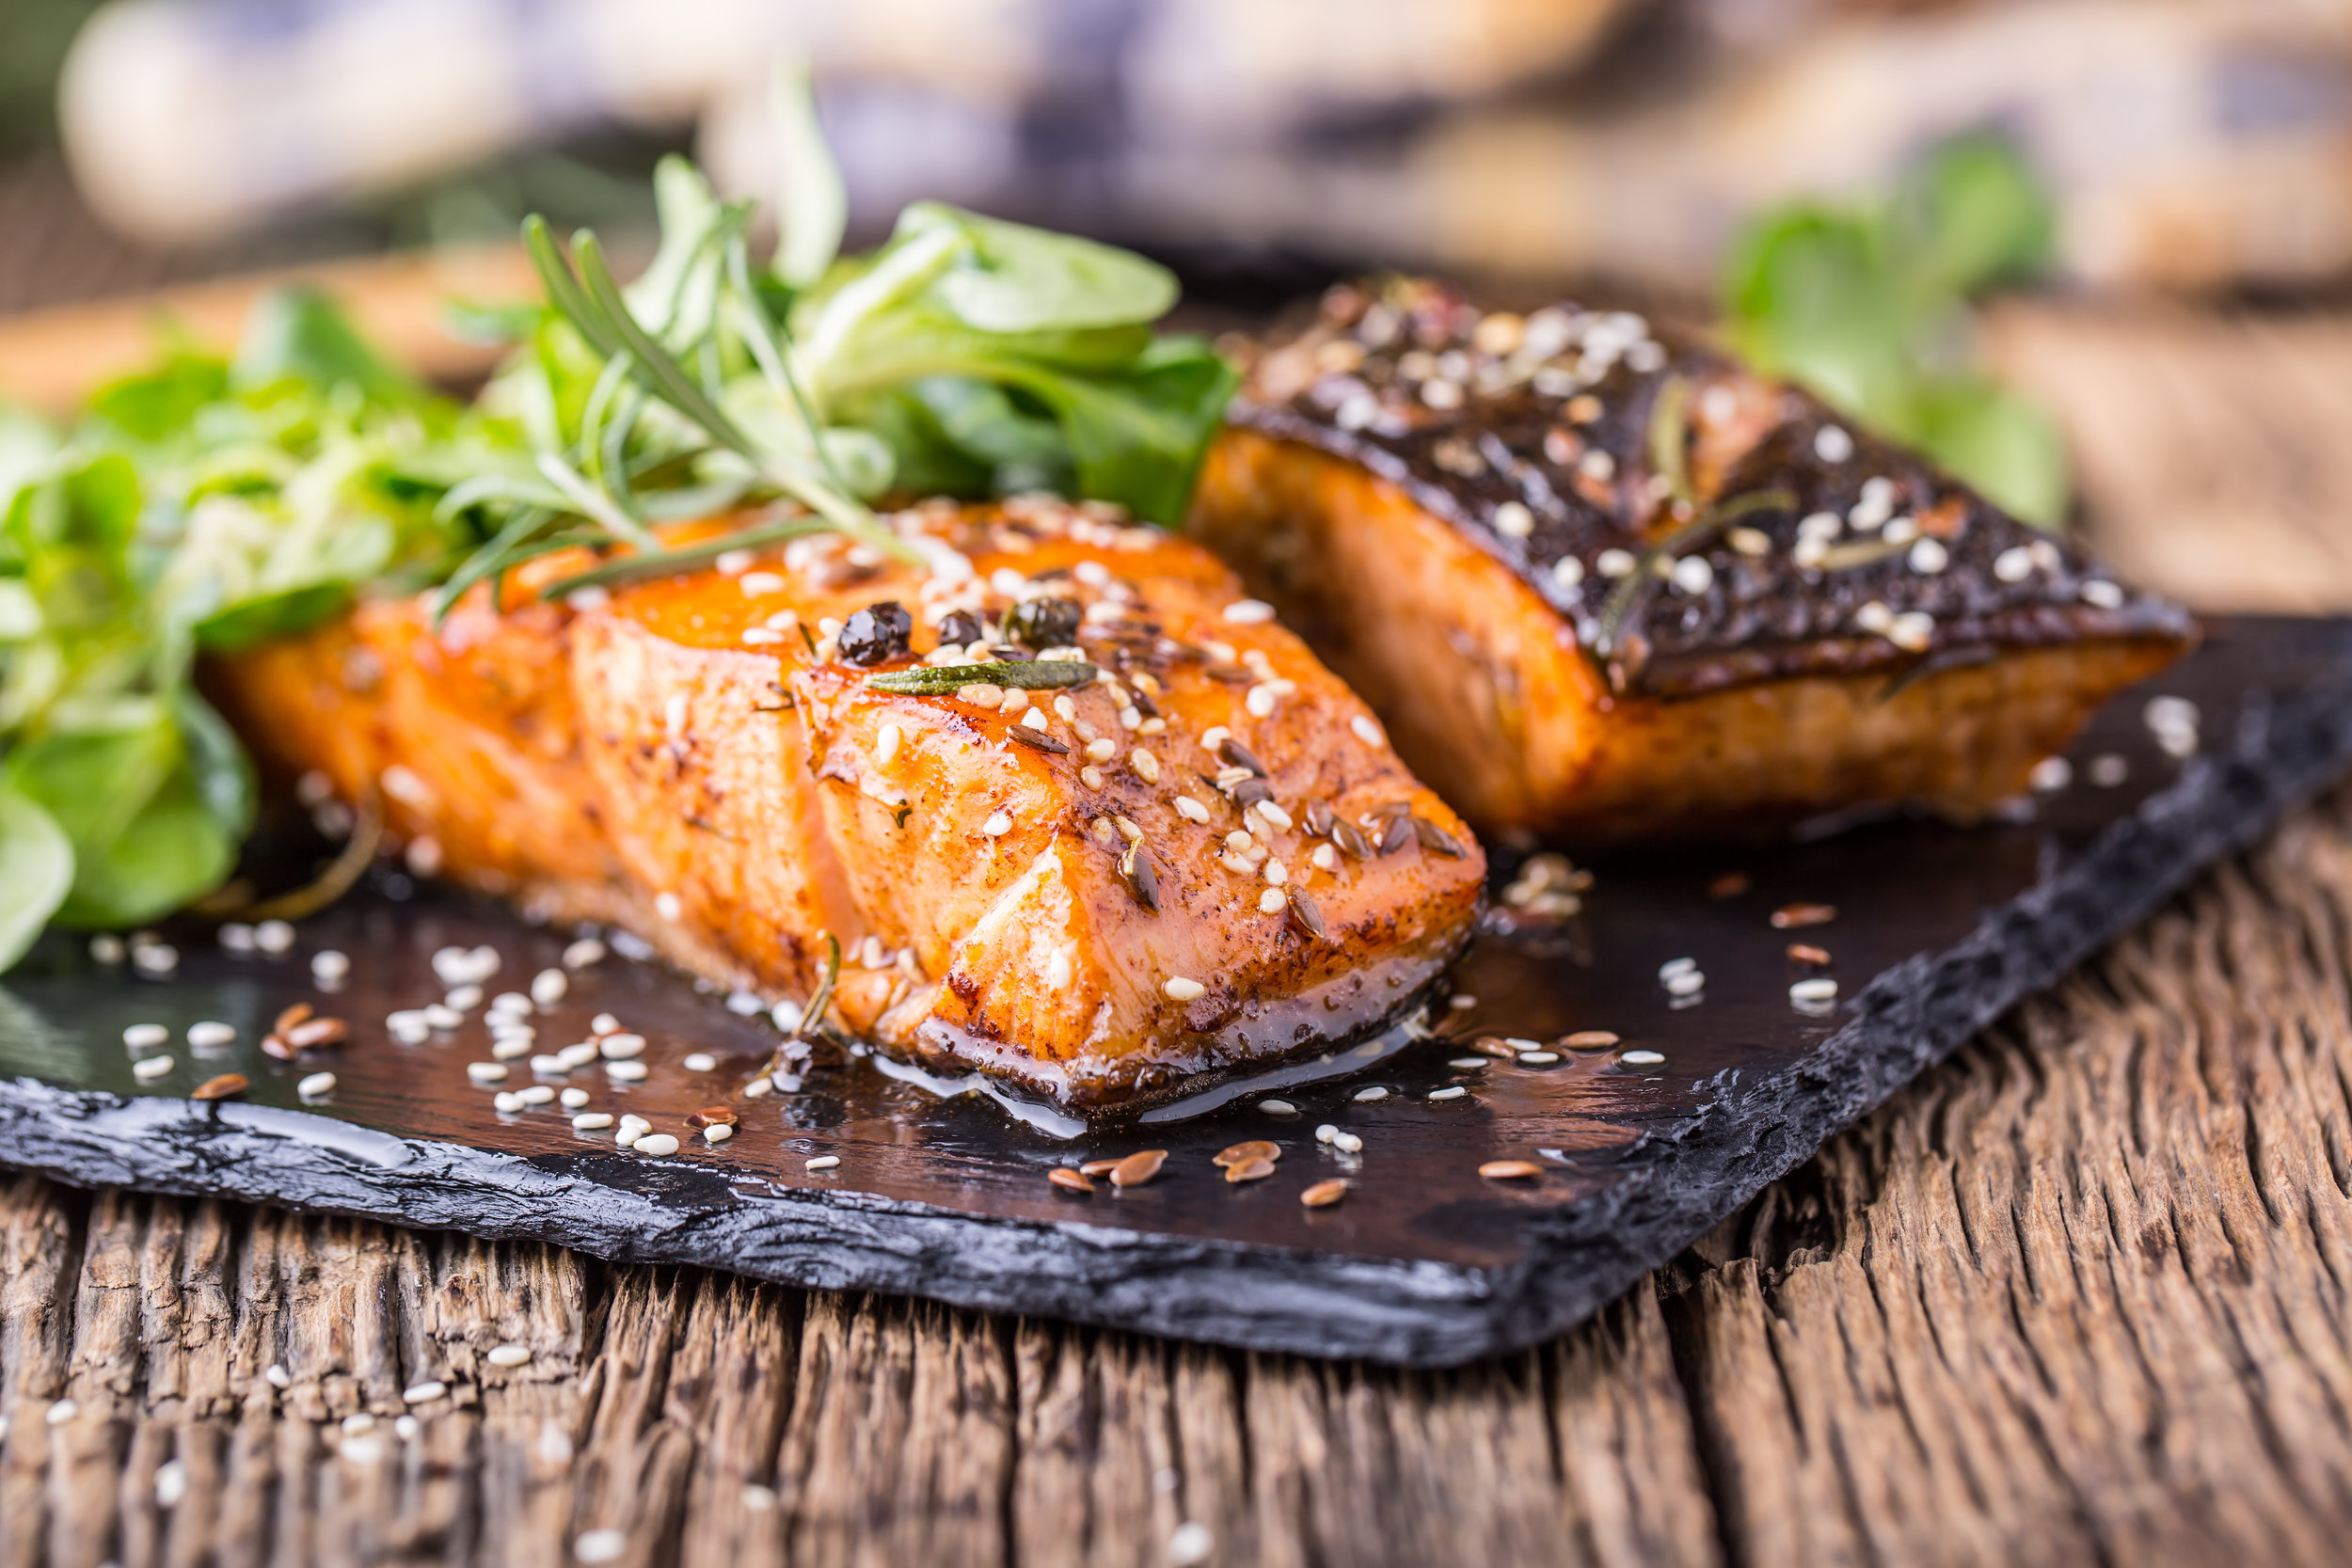 Baked Salmon with Steamed BroccoliNI -